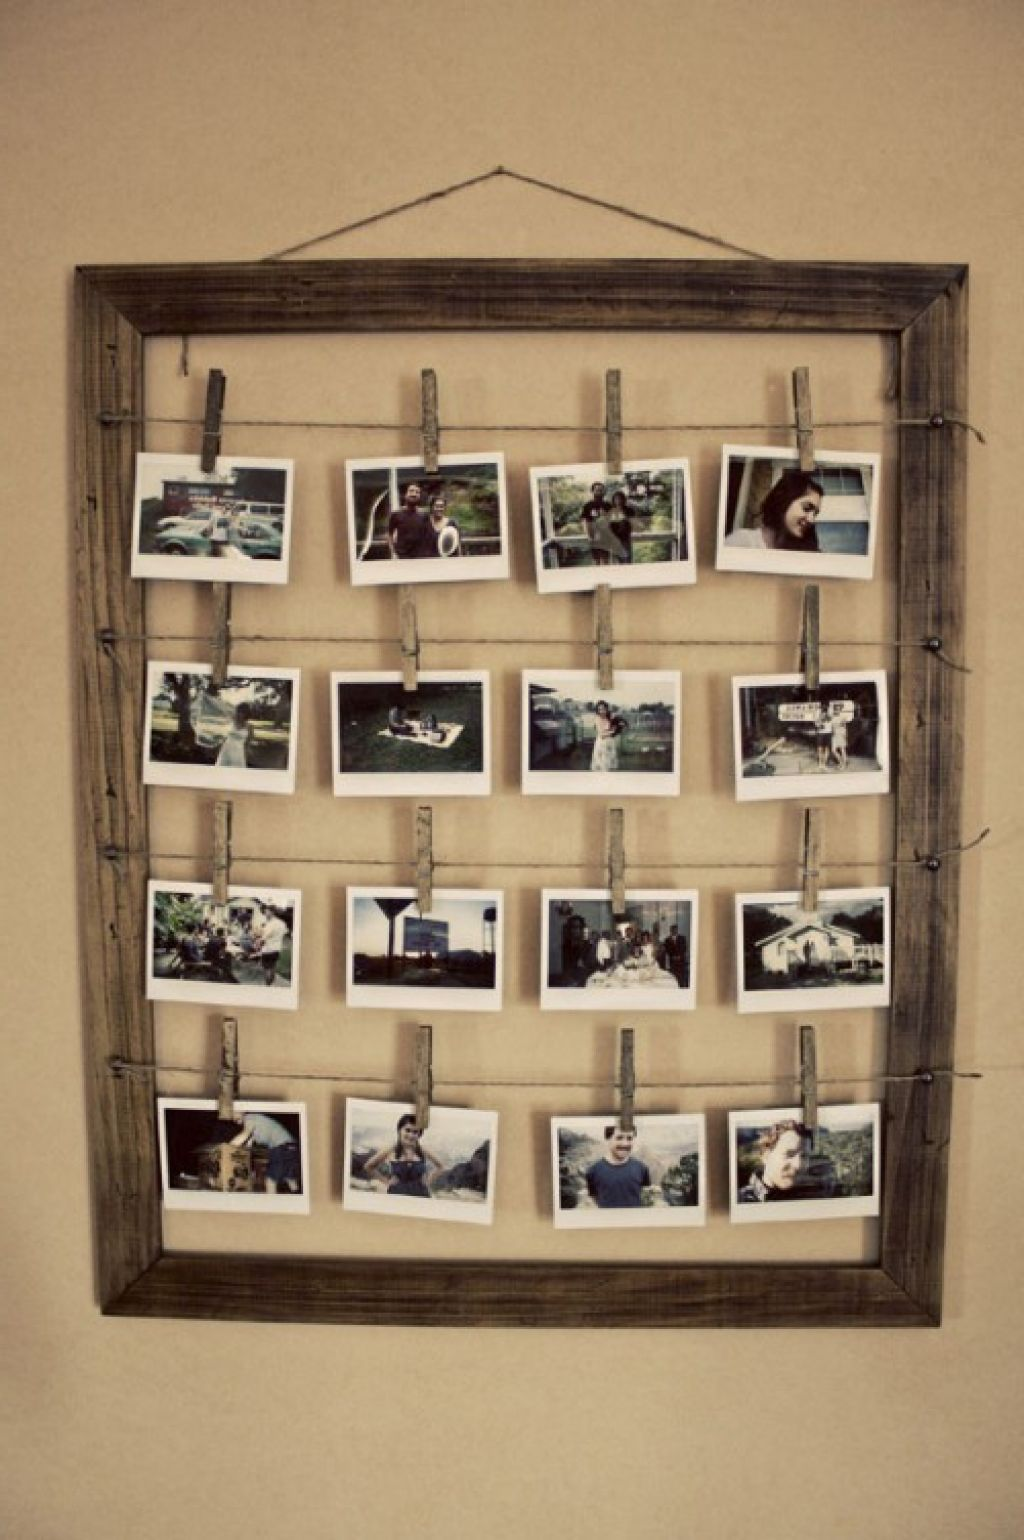 Unique Design For Homemade Floating Frame Ideas With Rustic Wooden